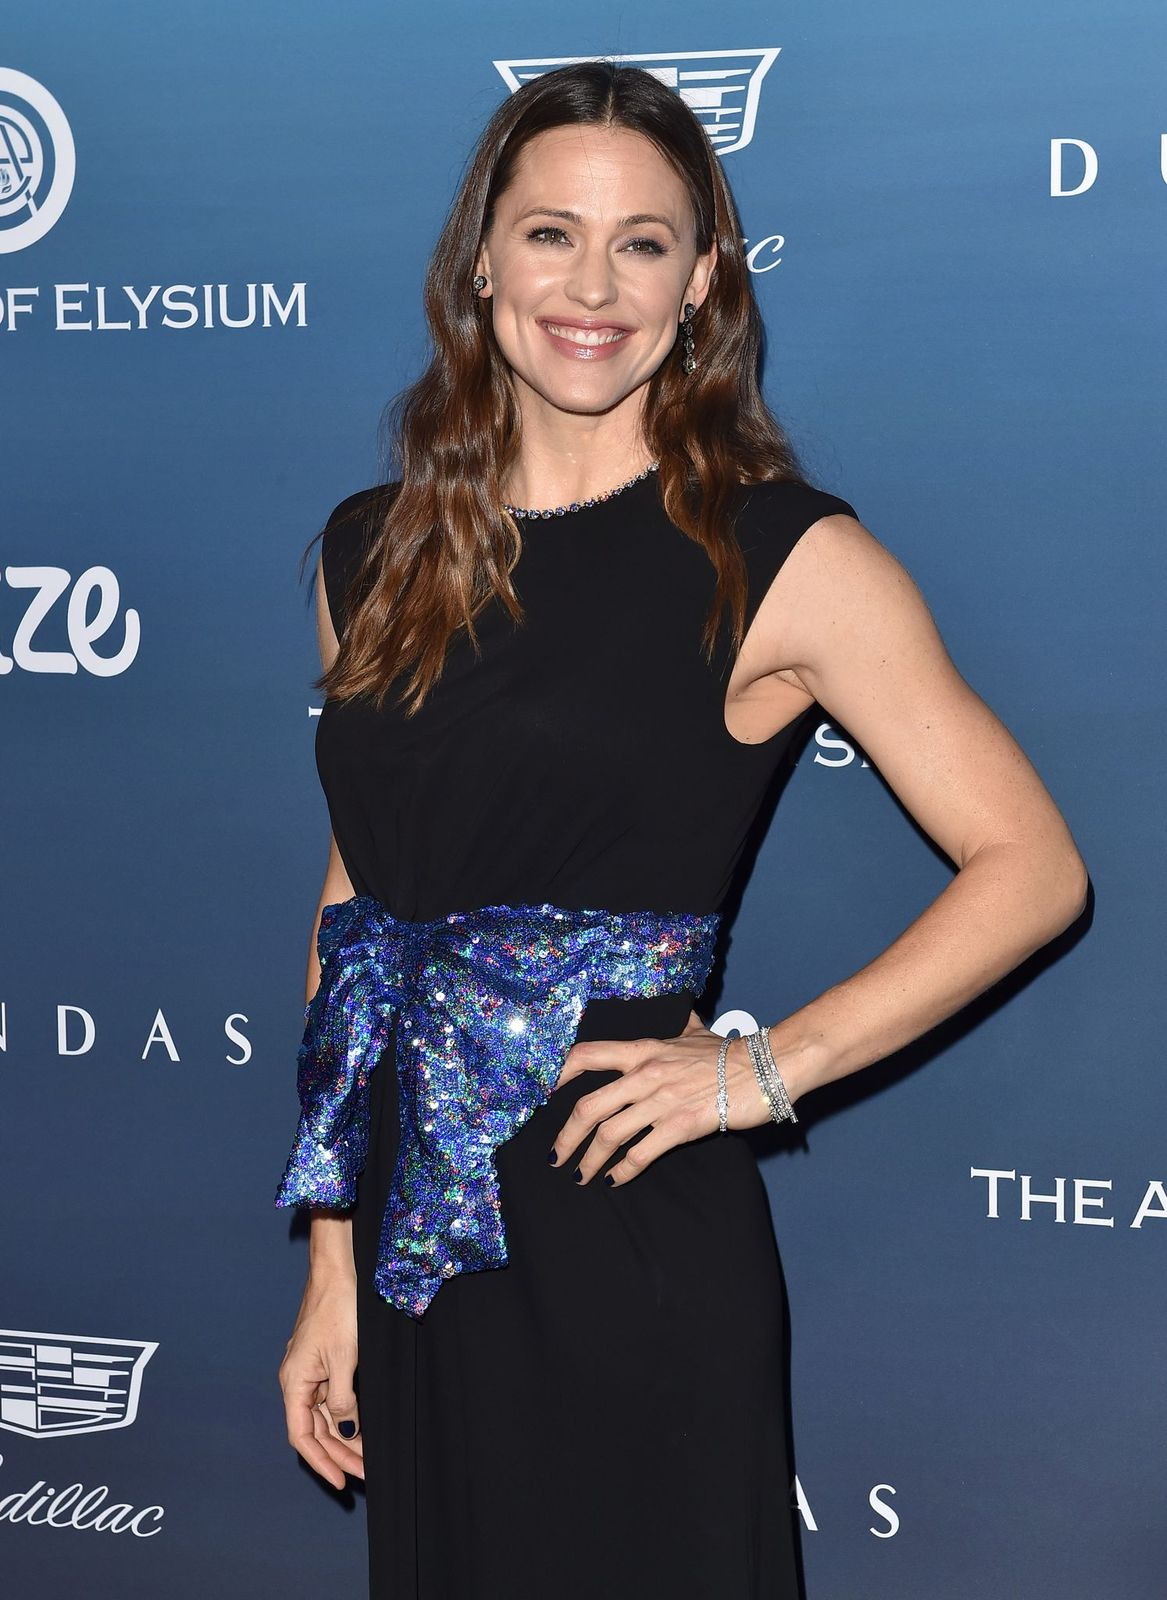 Jennifer Garner at The Art of Elysium's 12th Annual Celebration - Heaven, on January 5, 2019 | Getty Images